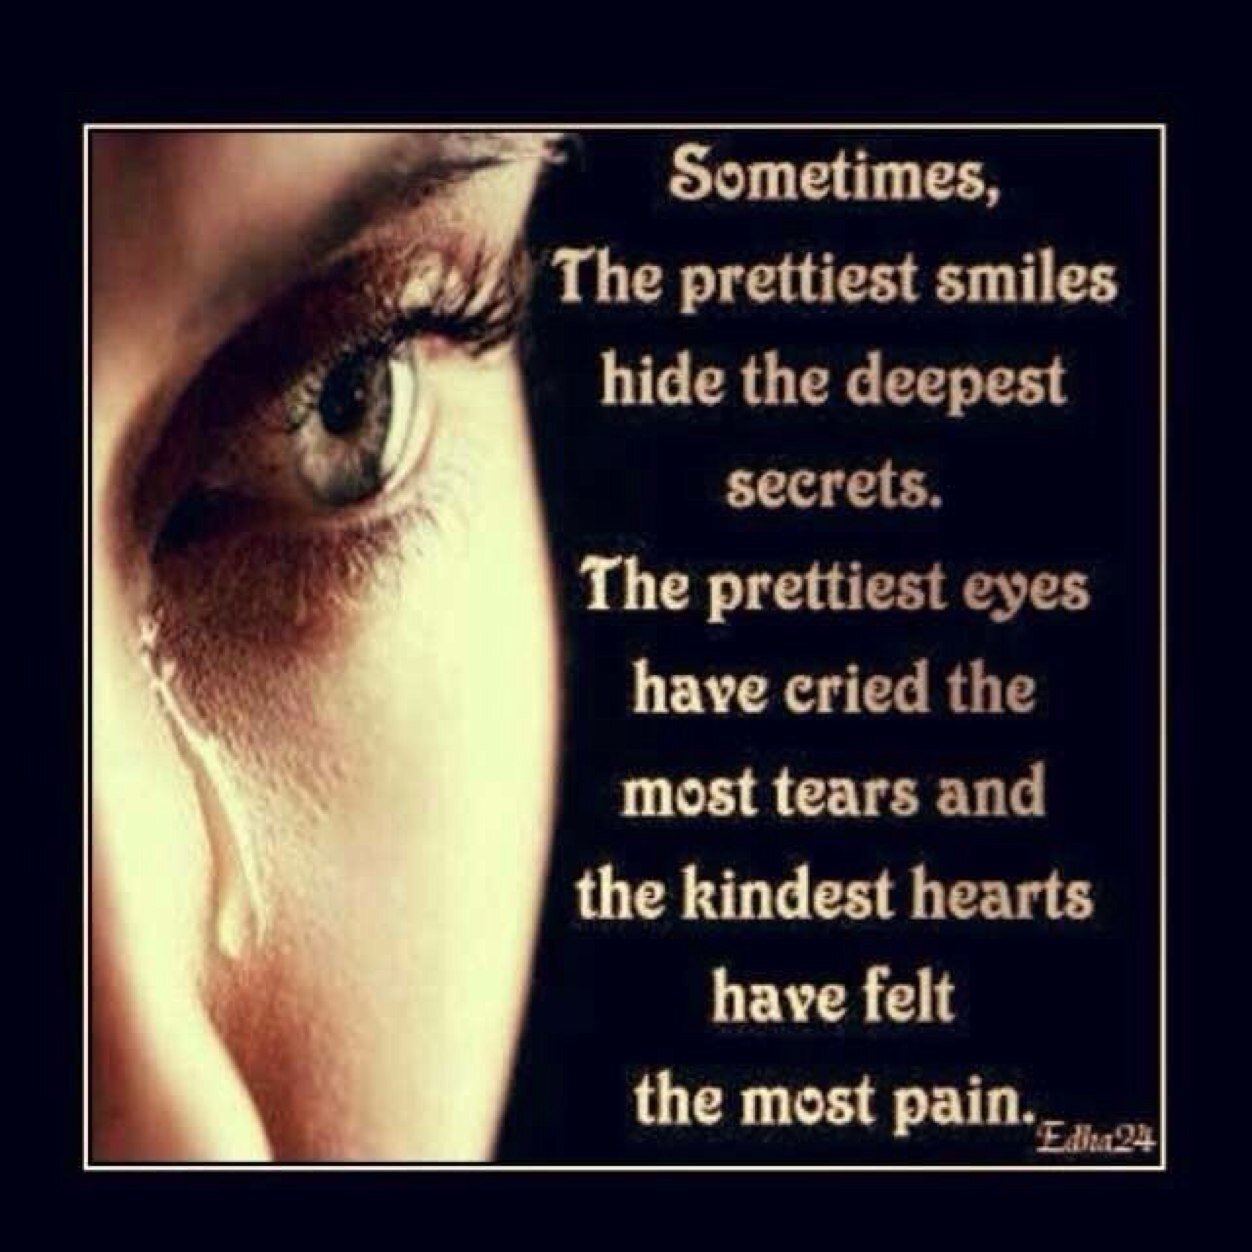 Sad Quotes About Depression: 65 Best Depression Quotes And Sayings